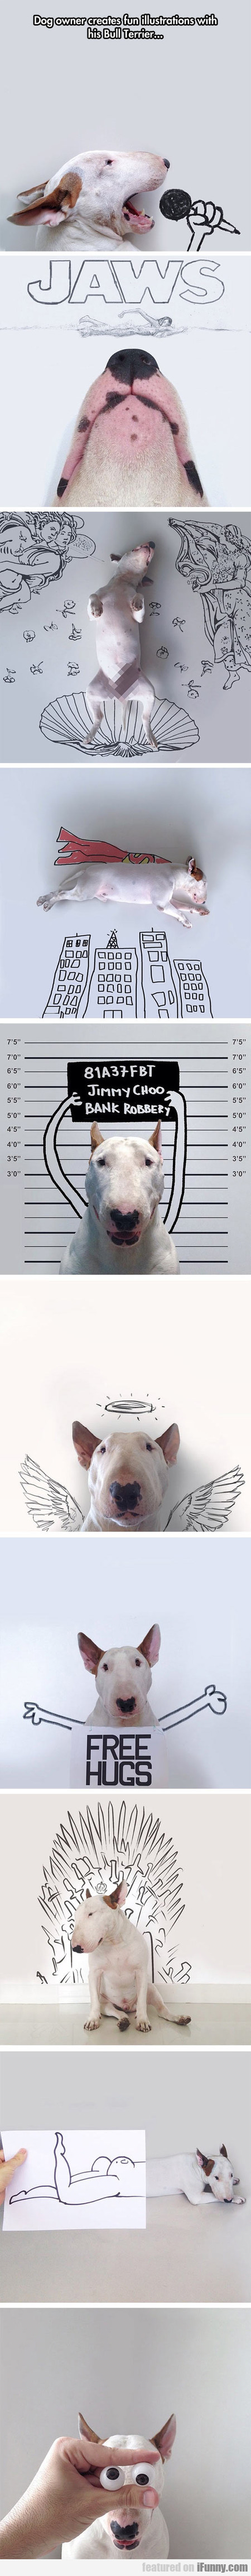 Dog Owner Creates Fun Illustrations With His Dog